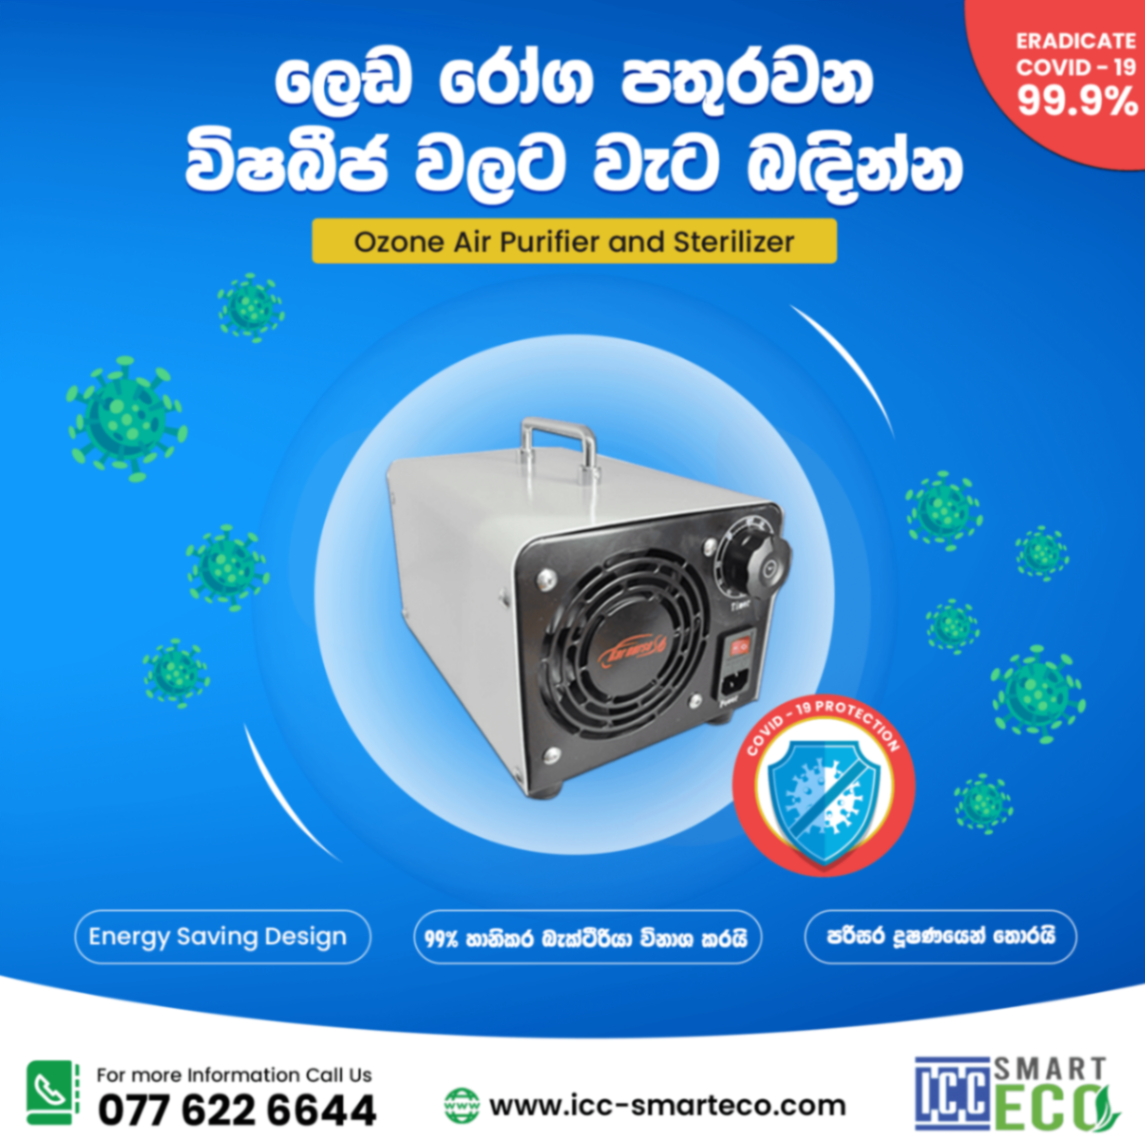 Eradicate Covid-19 by disinfecting the air you breathe. Stay Safe! Get your very own ICC Smart Eco - Ozone Sterilizer Today.